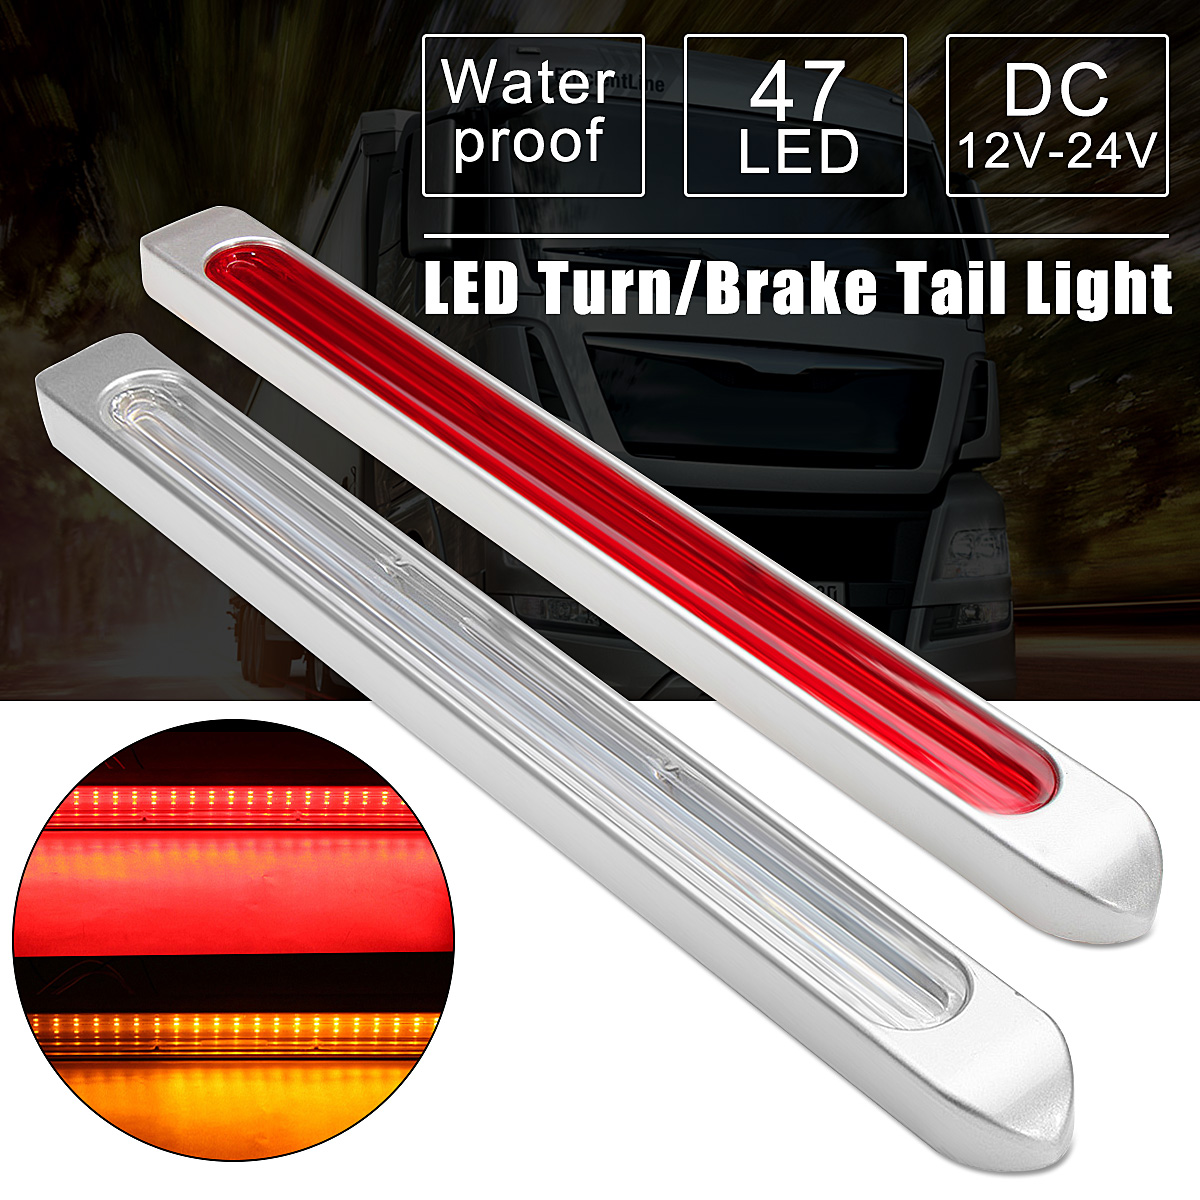 Universal LED Car Auto Brake Light Bar Tail Stopping Lamp 48LED Rear Tail Warning Light Lamp Turn Light Parking 12-24V dc 12 24v car rear warning light licence plate lamp tail lamp 12leds car styling round led number plate light